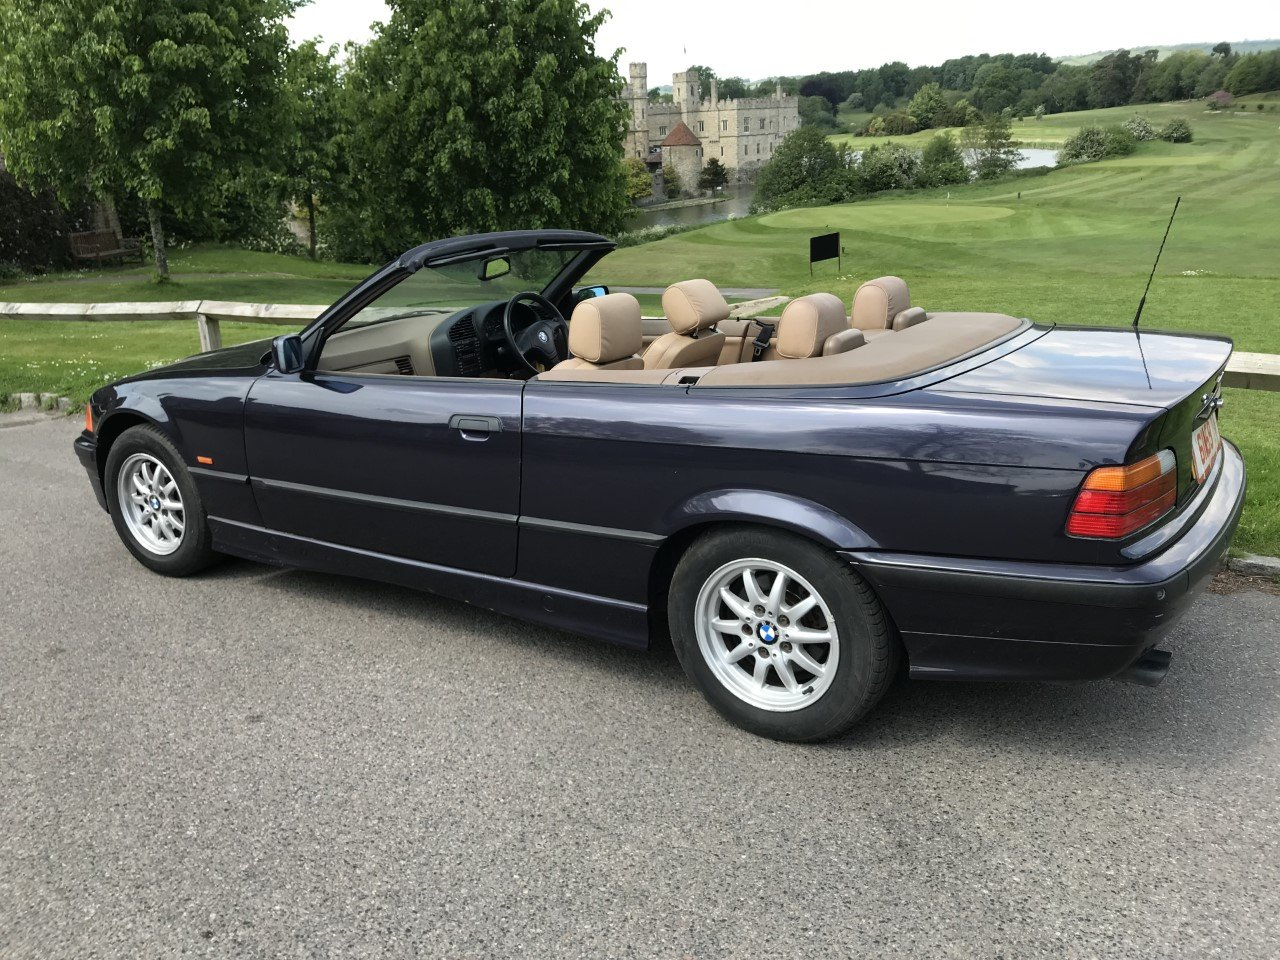 1998 BMW 323i convertible E36 low miles new MOT For Sale (picture 2 of 2)